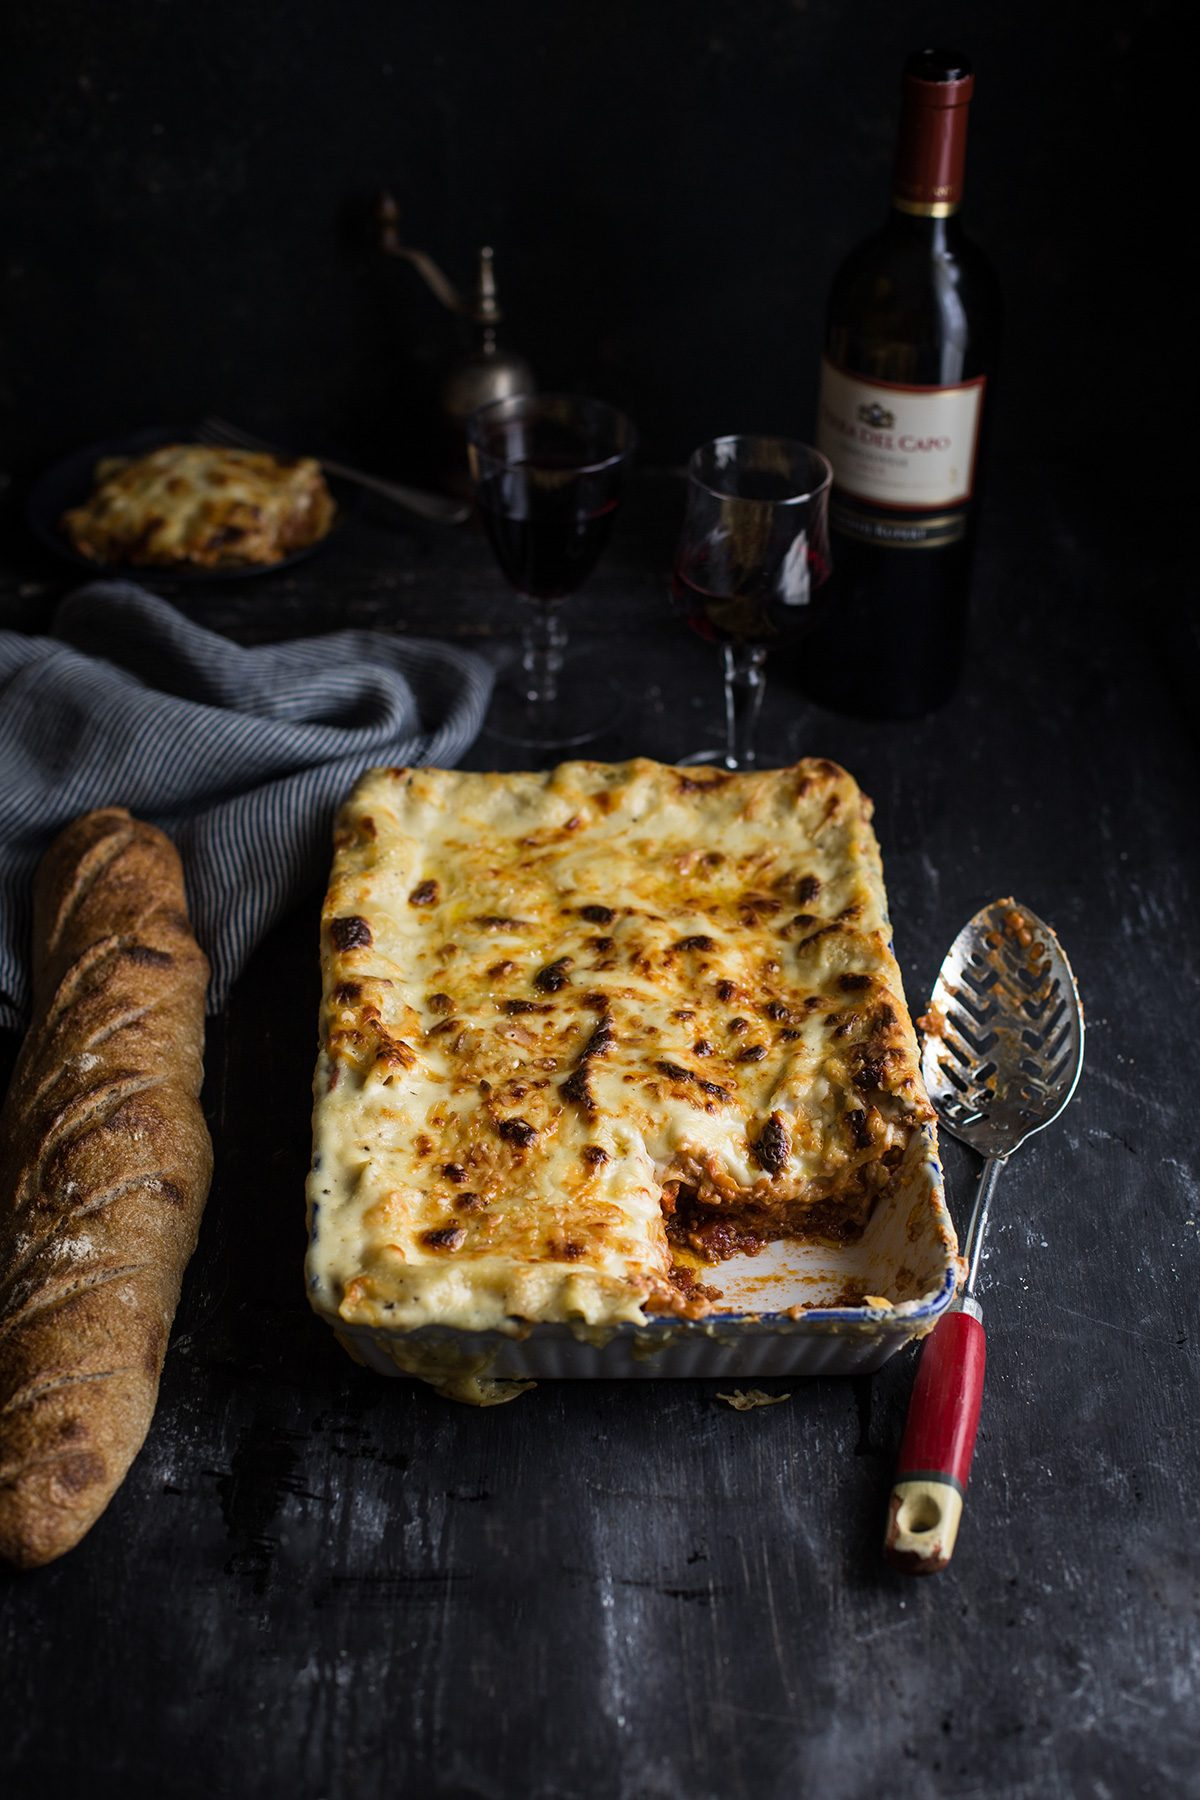 A sort of classic lasagne recipe